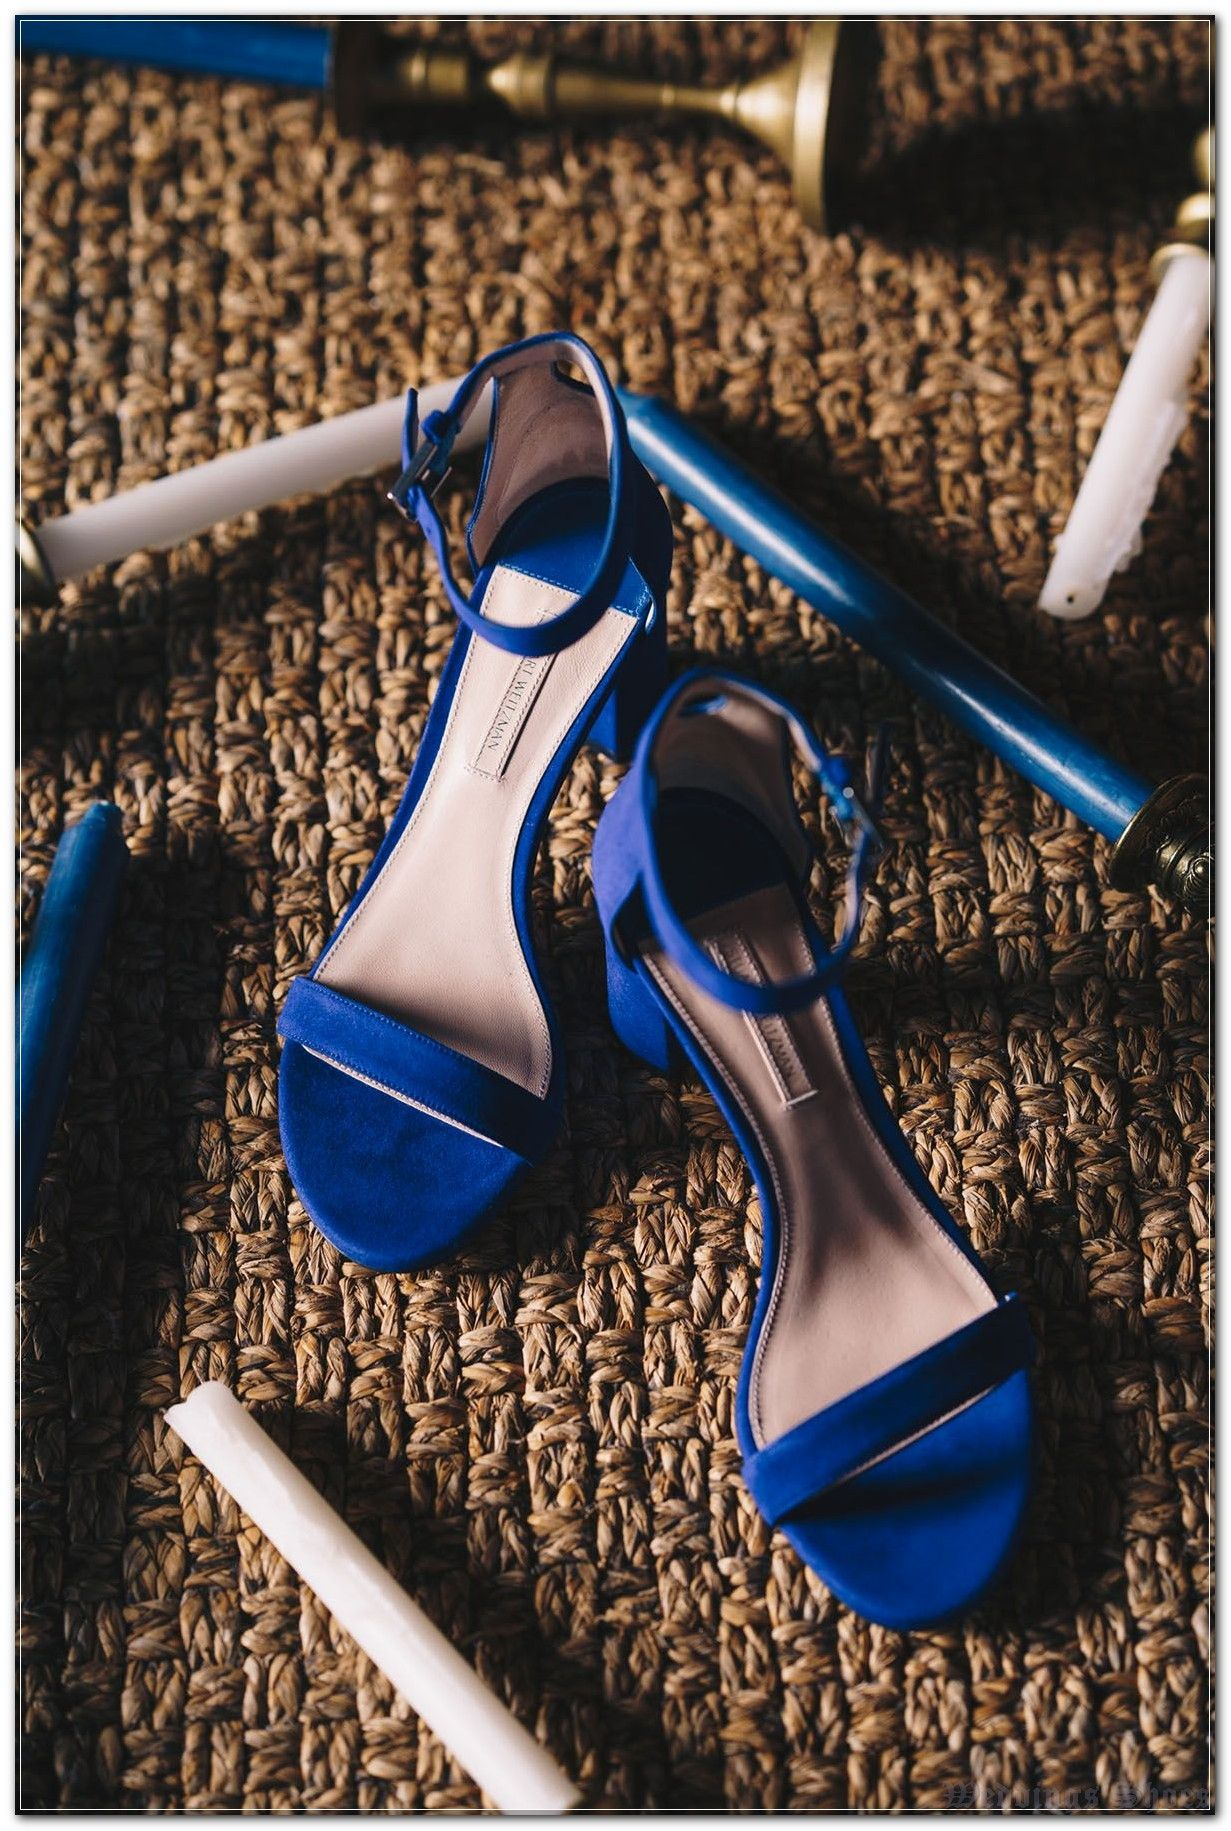 Does Wedding Shoes Sometimes Make You Feel Stupid?